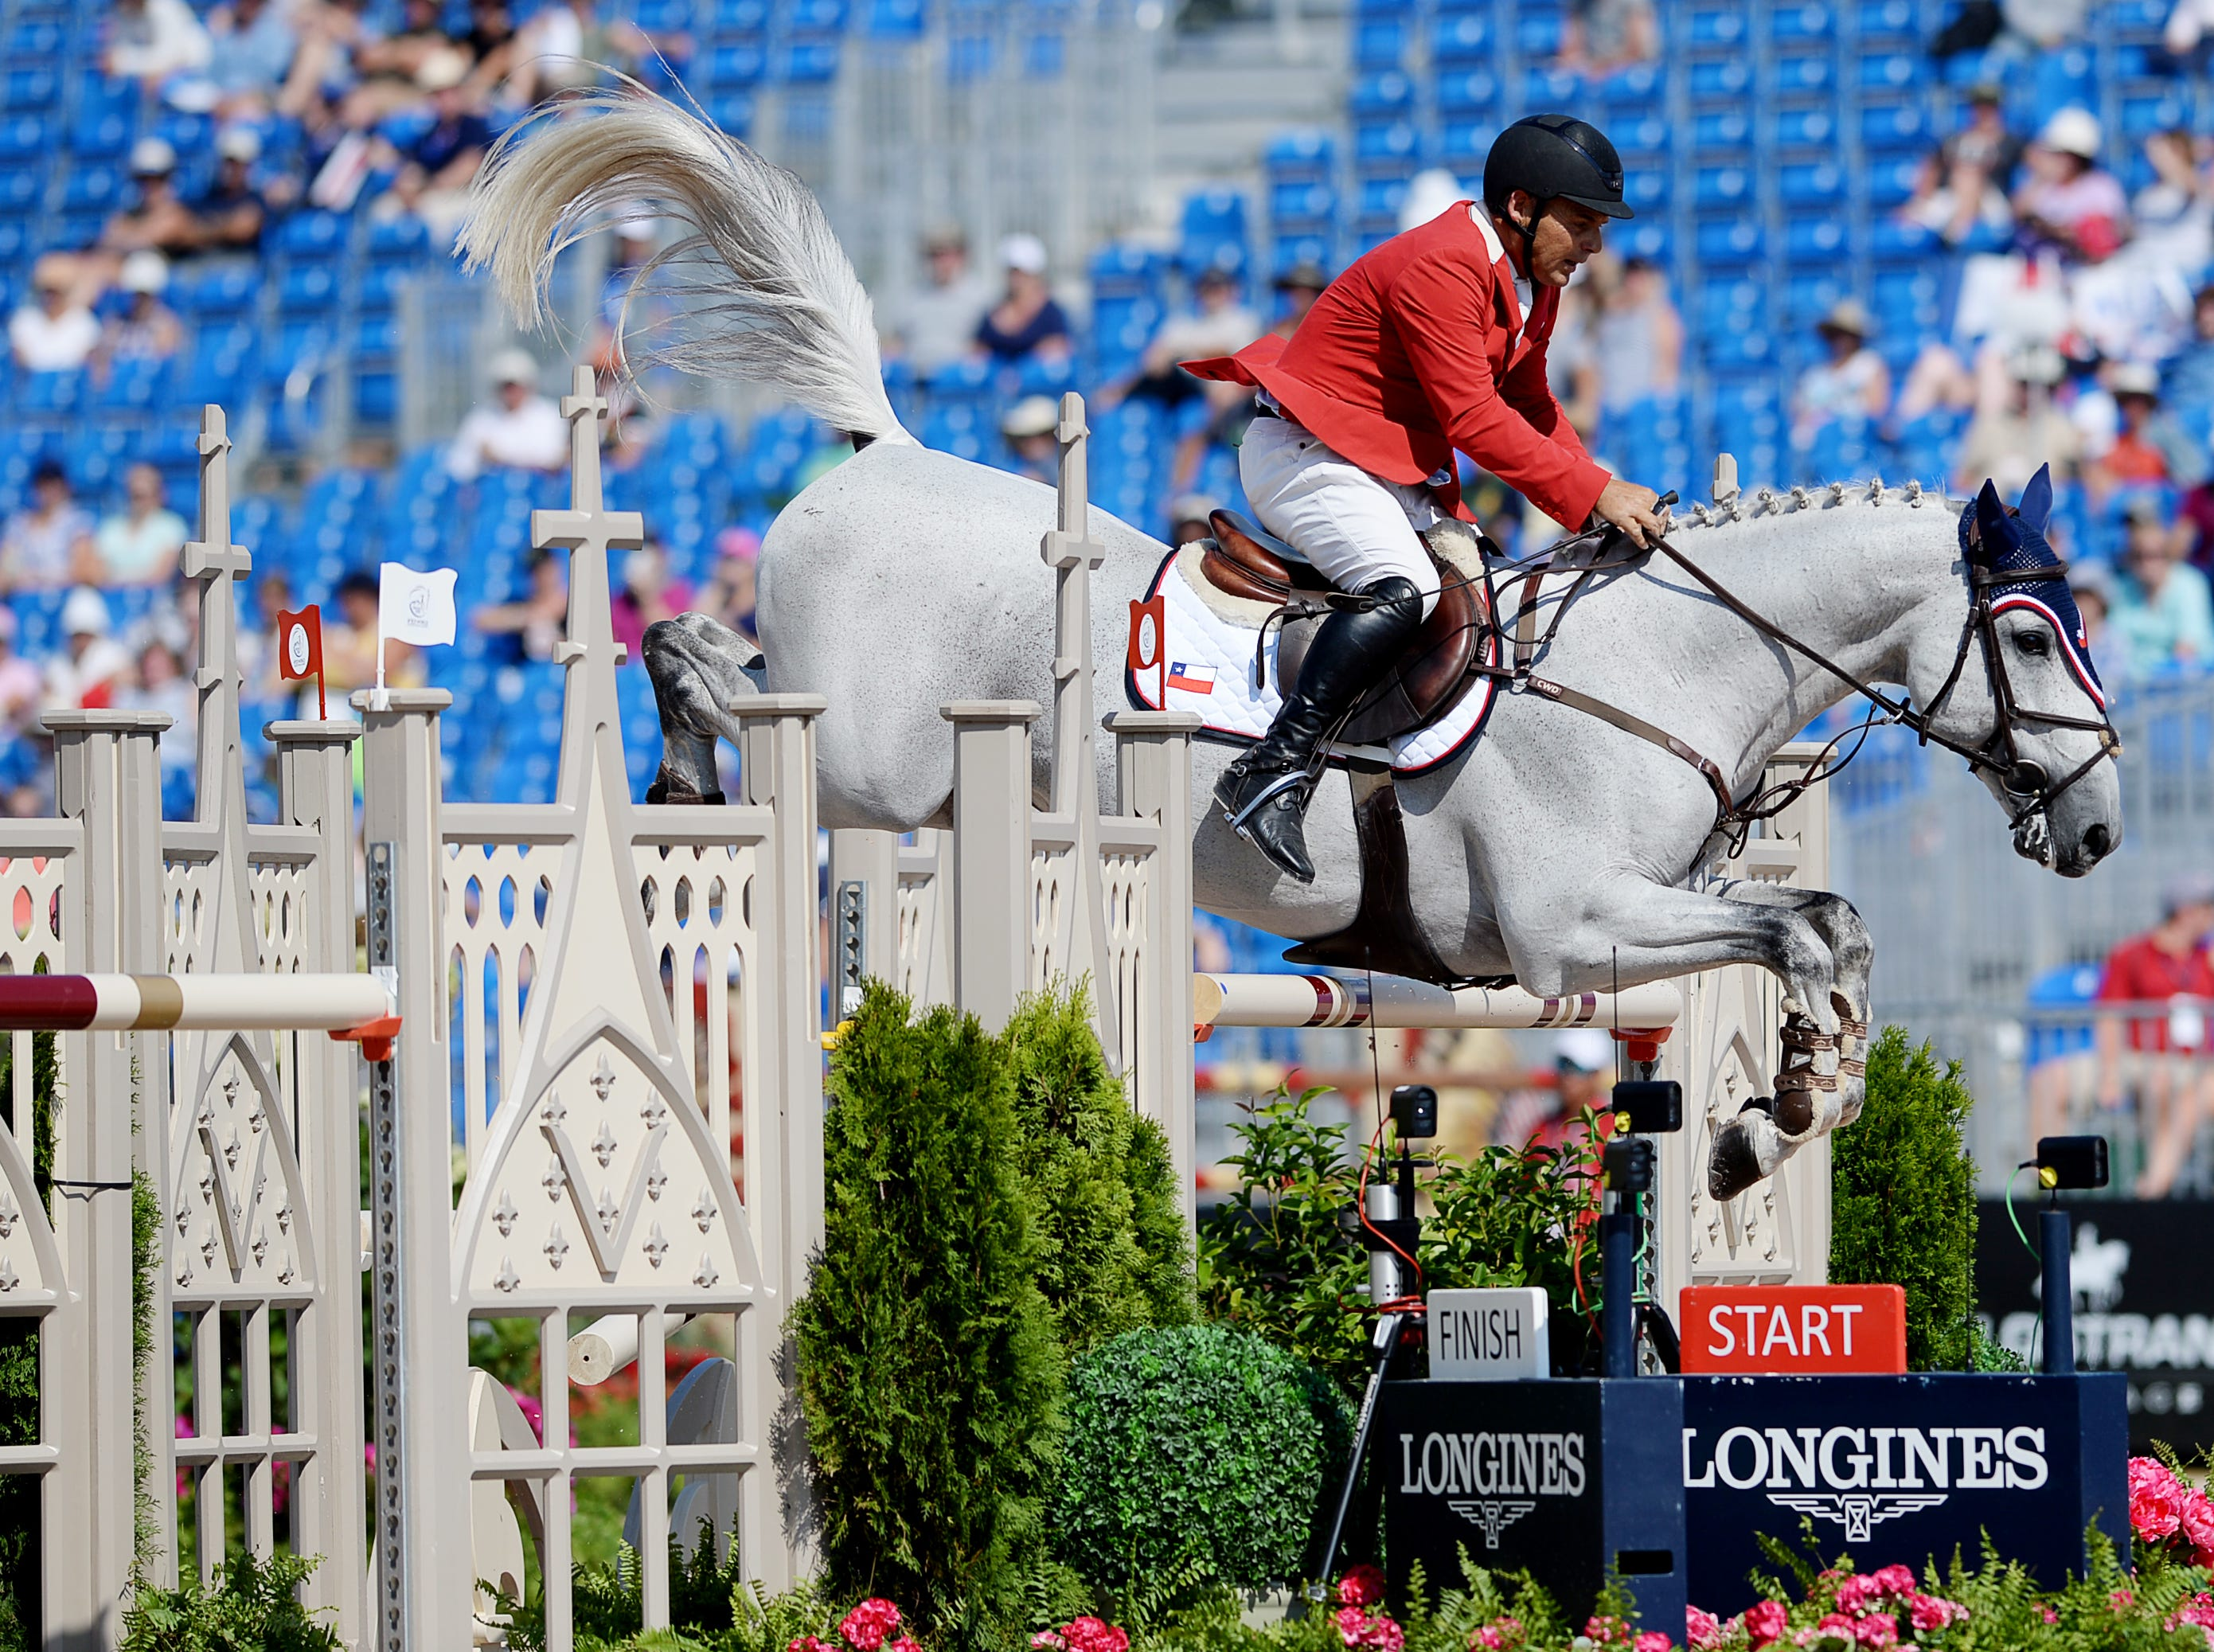 Scenes from the jumping competition at the World Equestrian Games Sept. 19, 2018.